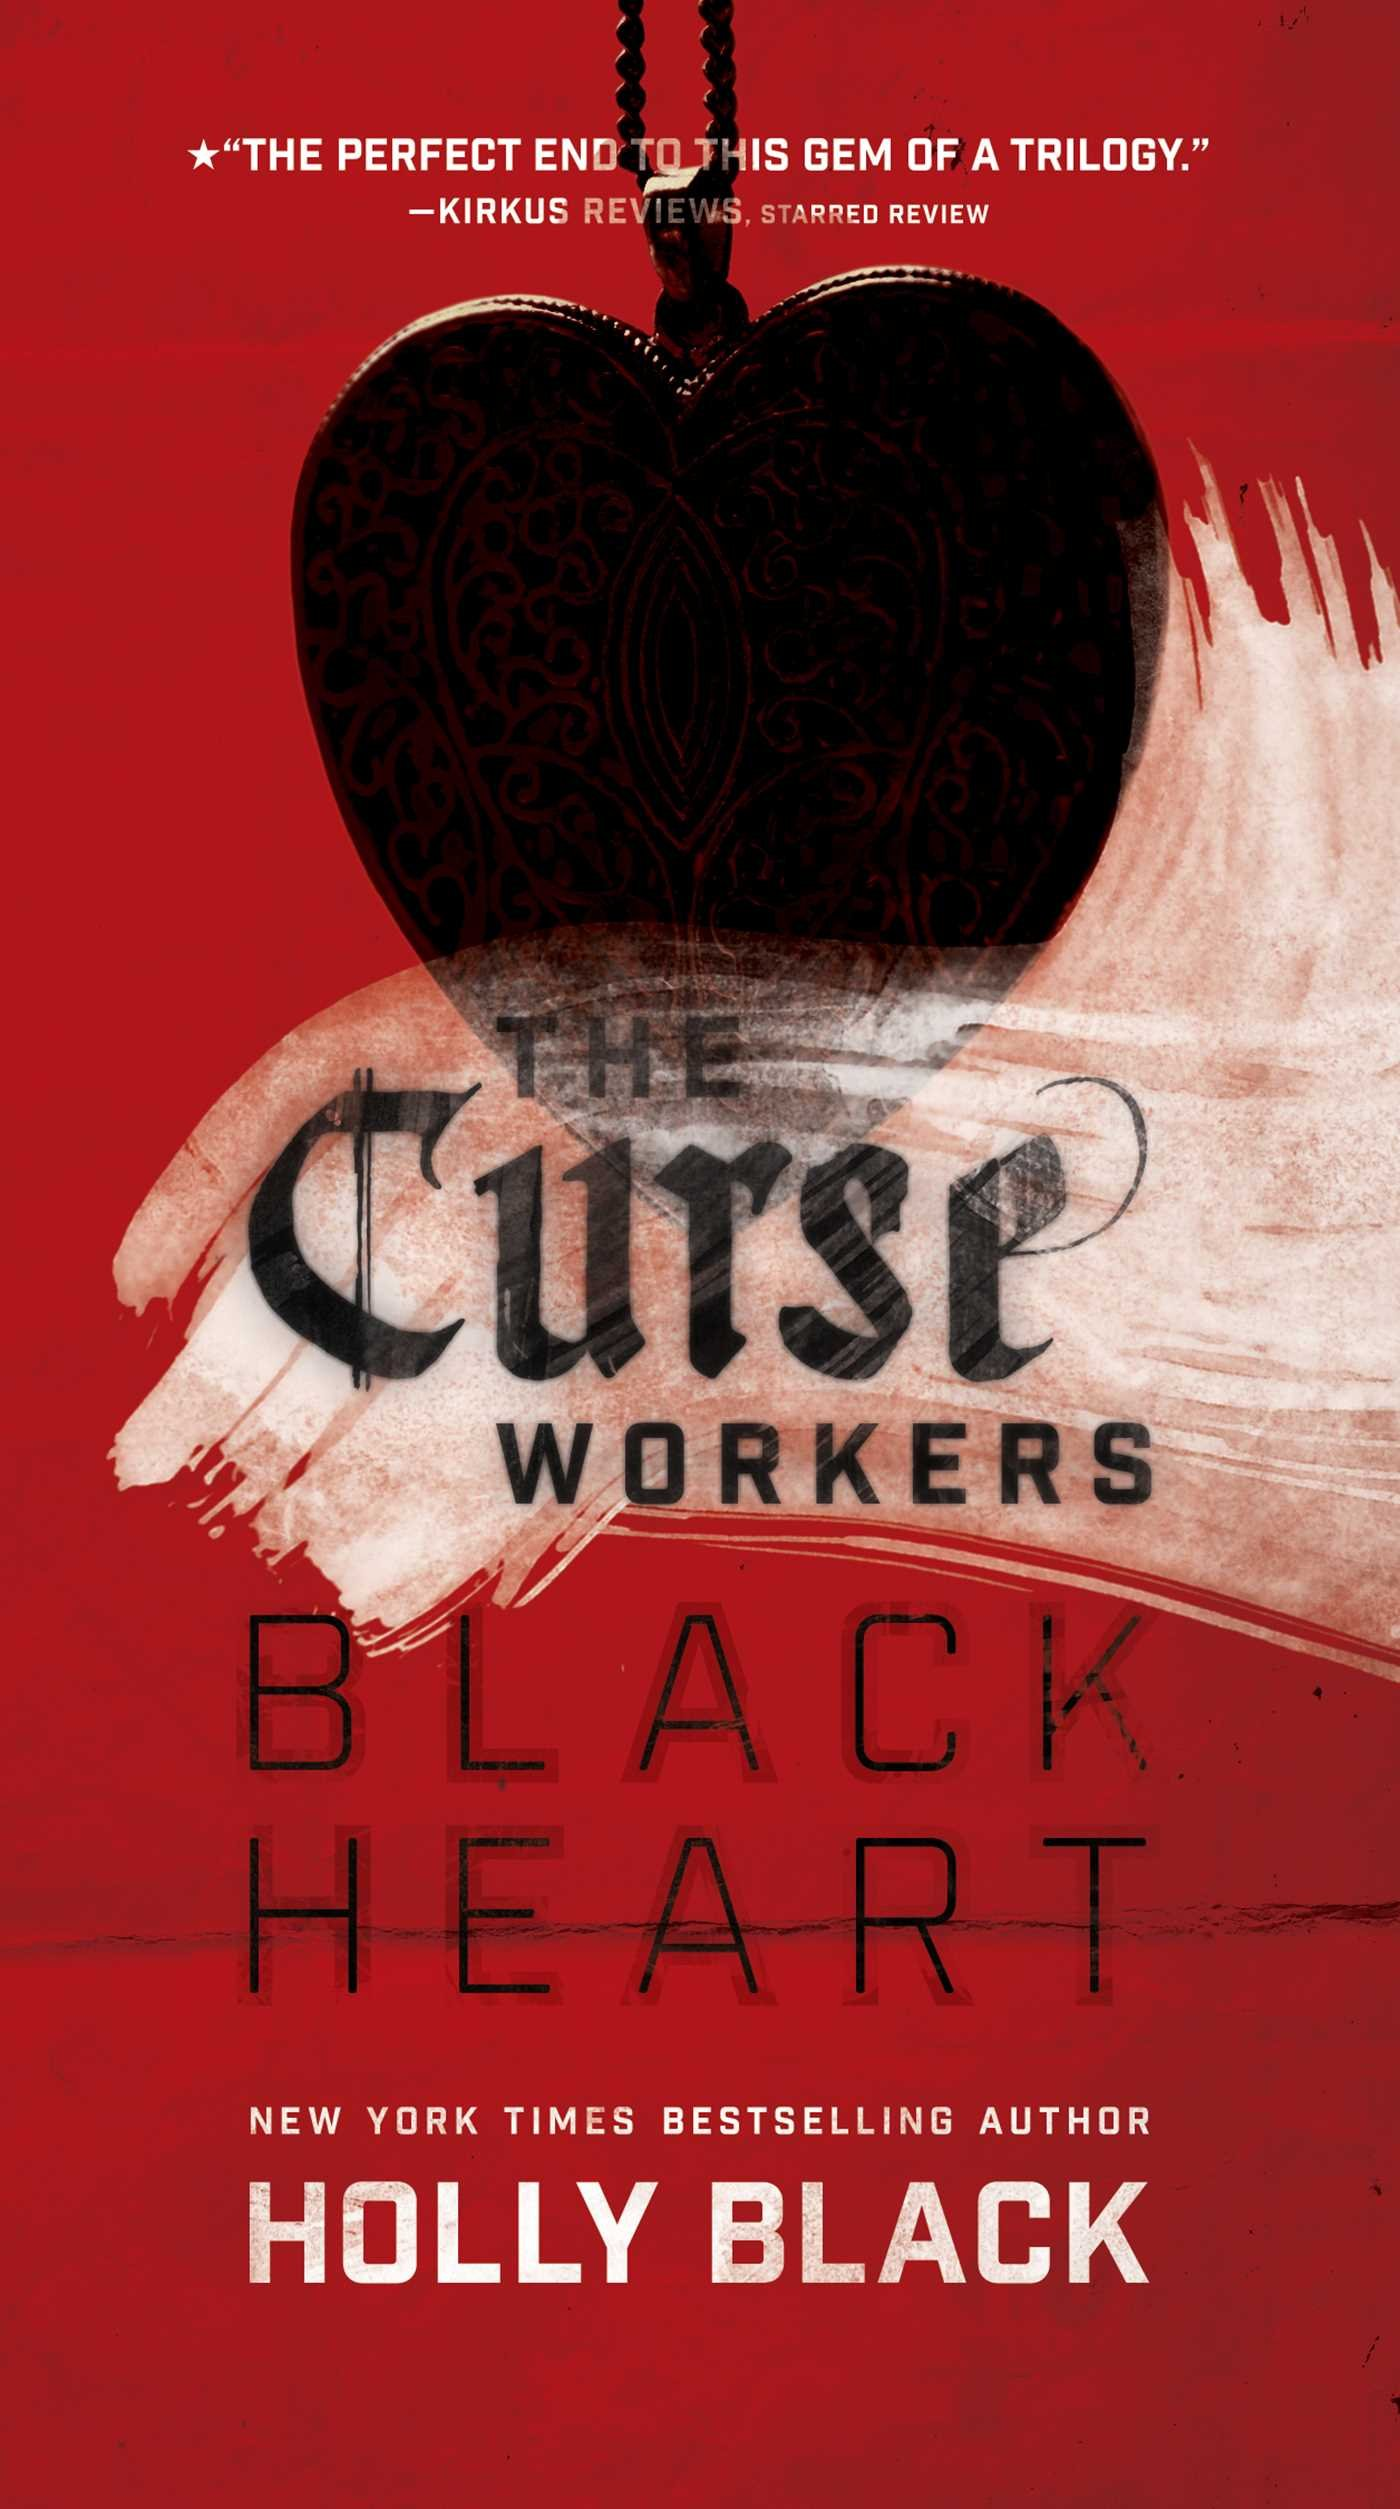 Black Heart (The Curse Workers): Holly Black: 9781481444552 ...